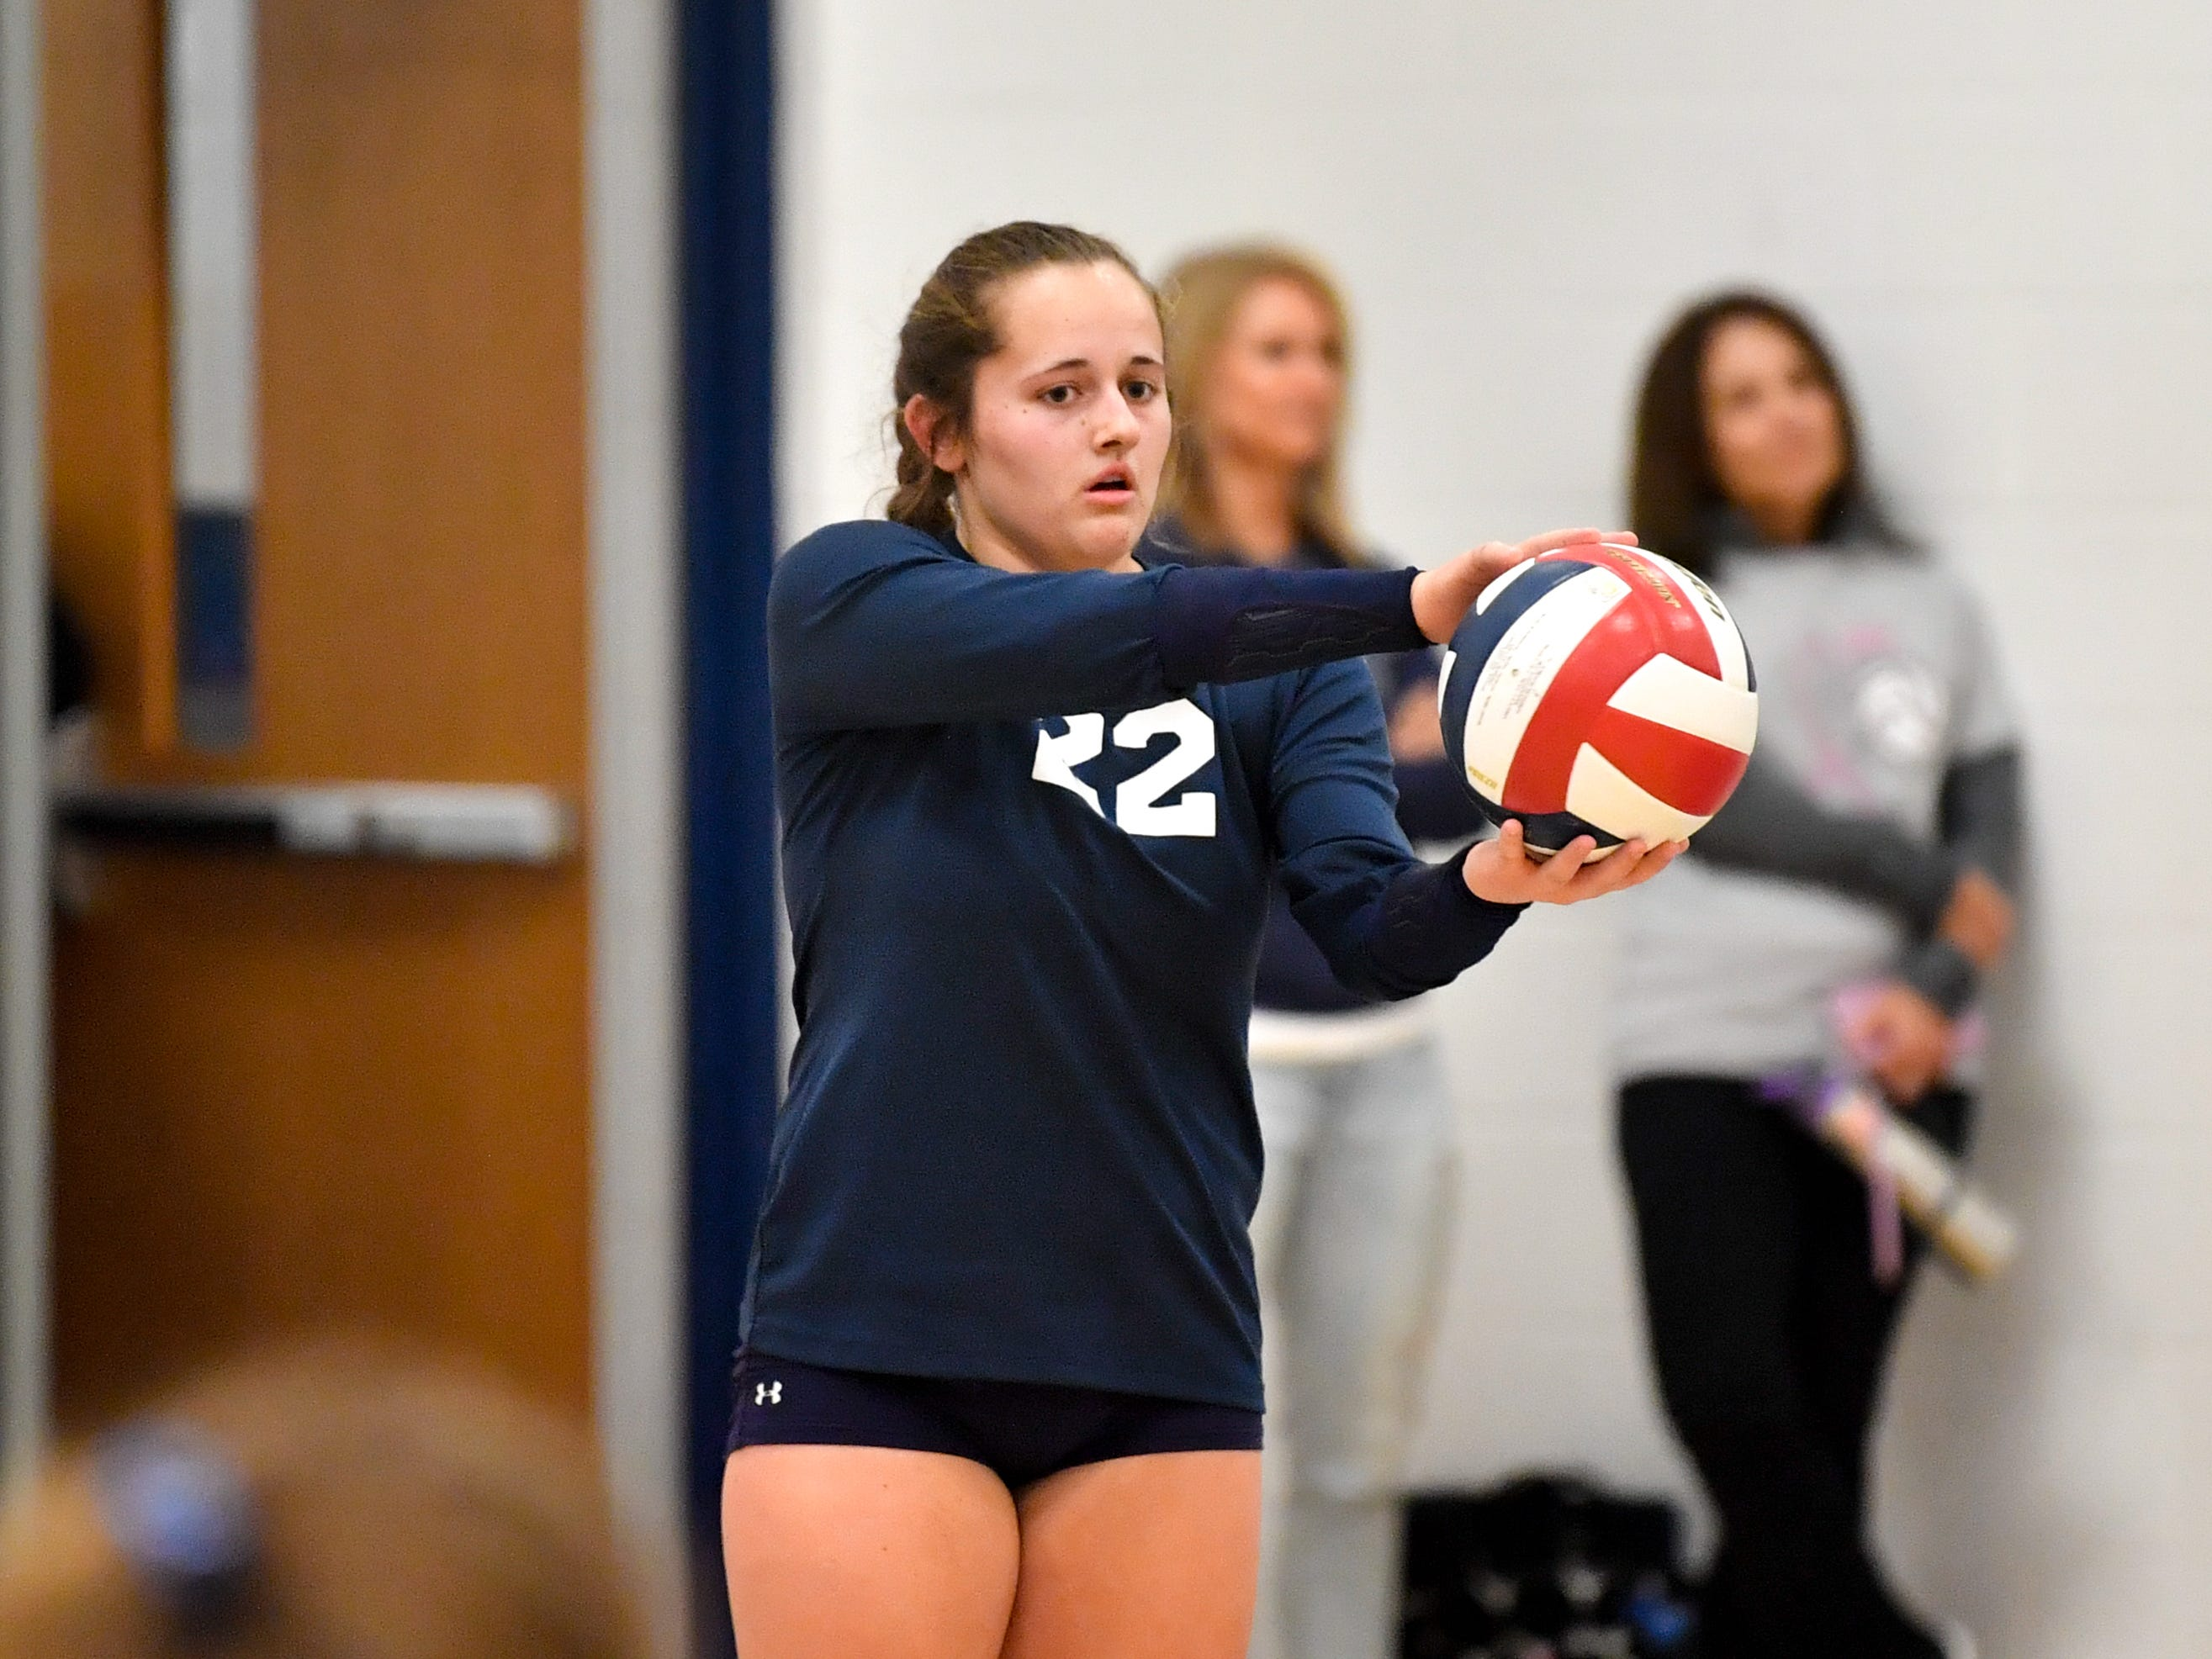 Kambrie Hepler (22) prepares to serve during the District 3 Class 3A girls' volleyball quarterfinals between West York and Eastern York at West York High School, October 30, 2018. The Bulldogs defeated the Golden Knights 3-0.